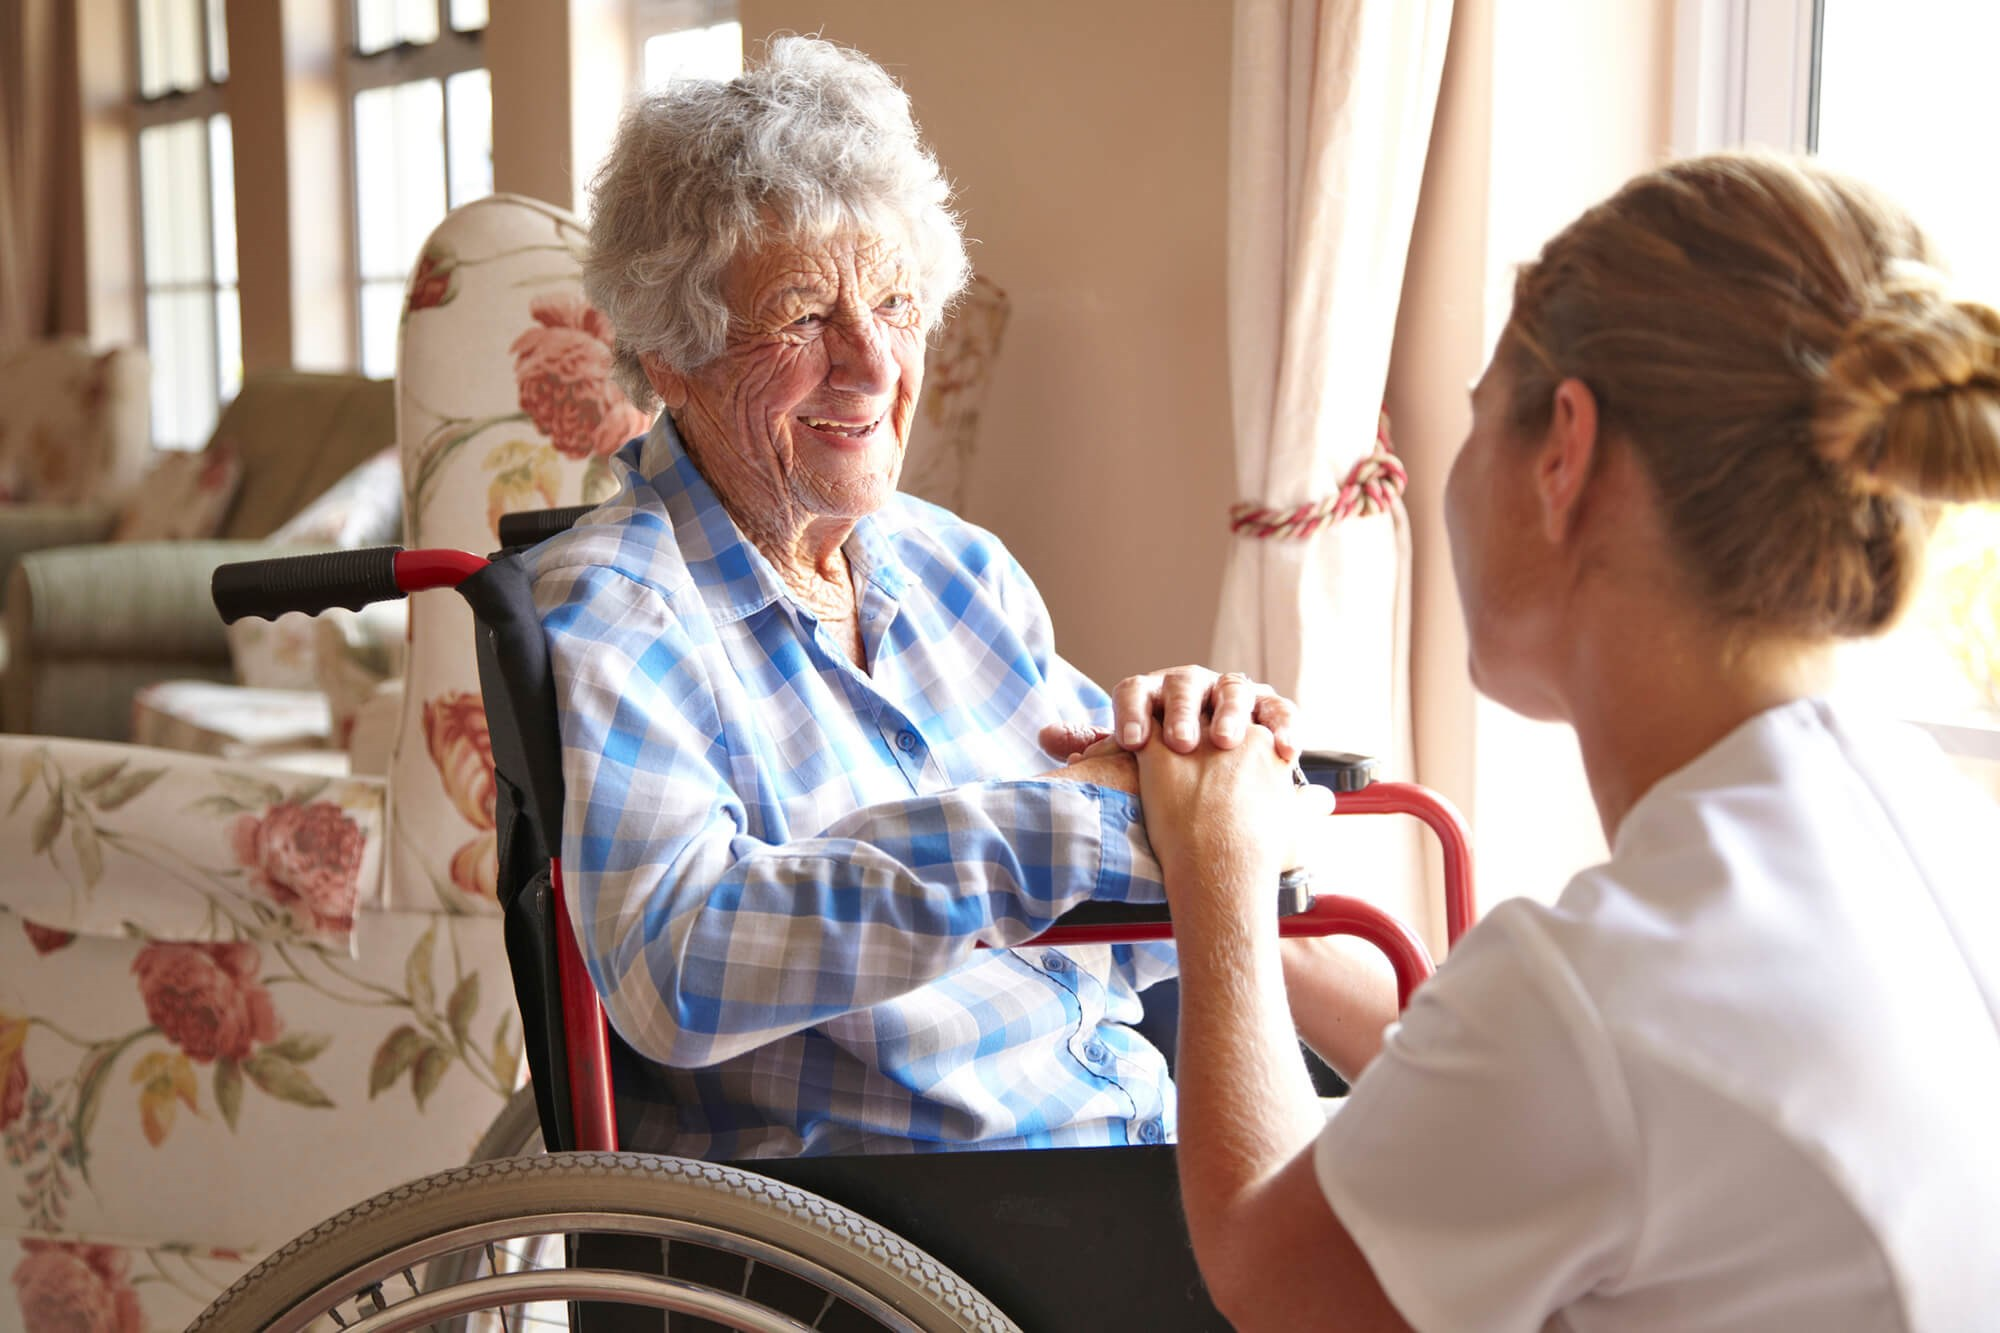 The burdens of surgical intervention can be greater for older female nursing home residents.